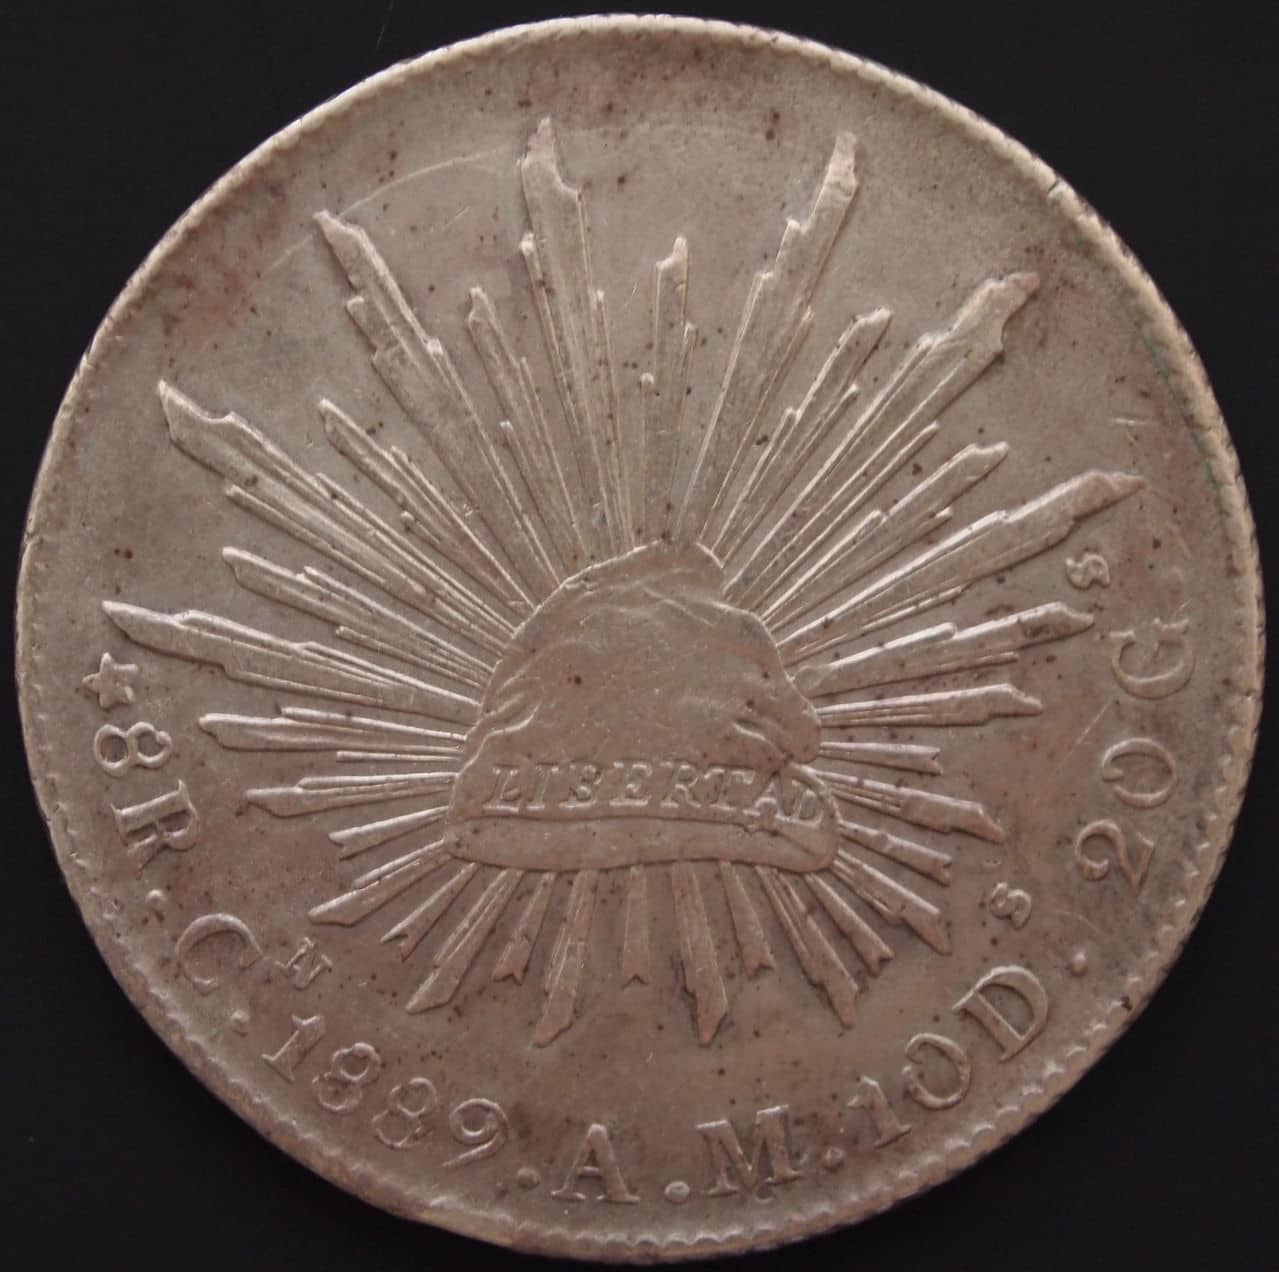 8 reales Culiacan 1